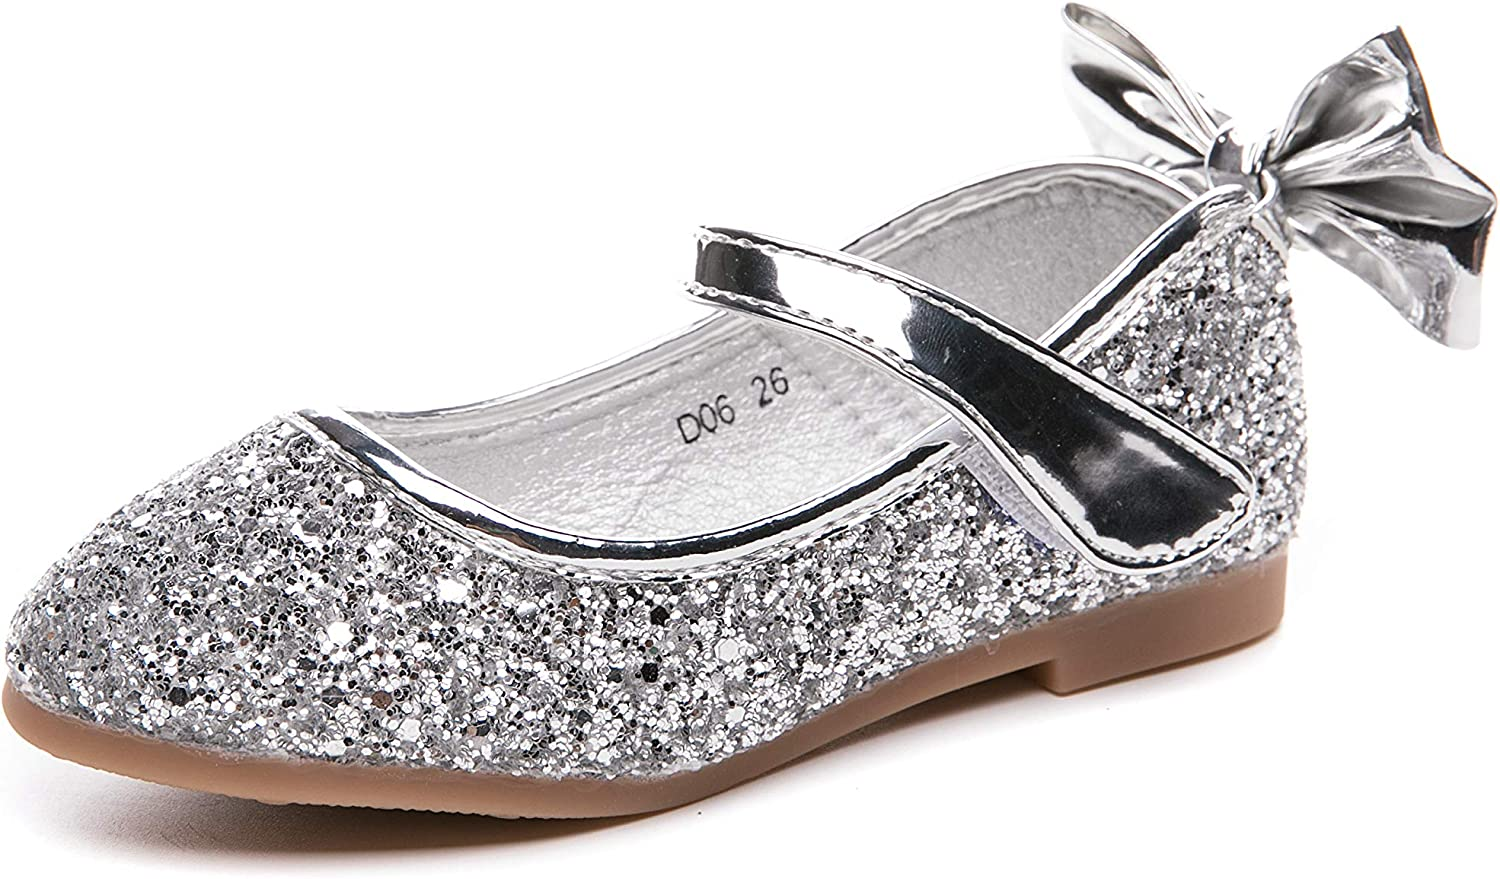 Je-Gou Kid's Girl's Adorable Bowknot Sparkle Mary Jane Flats Glitter Princess Wedding Party Dress Shoes